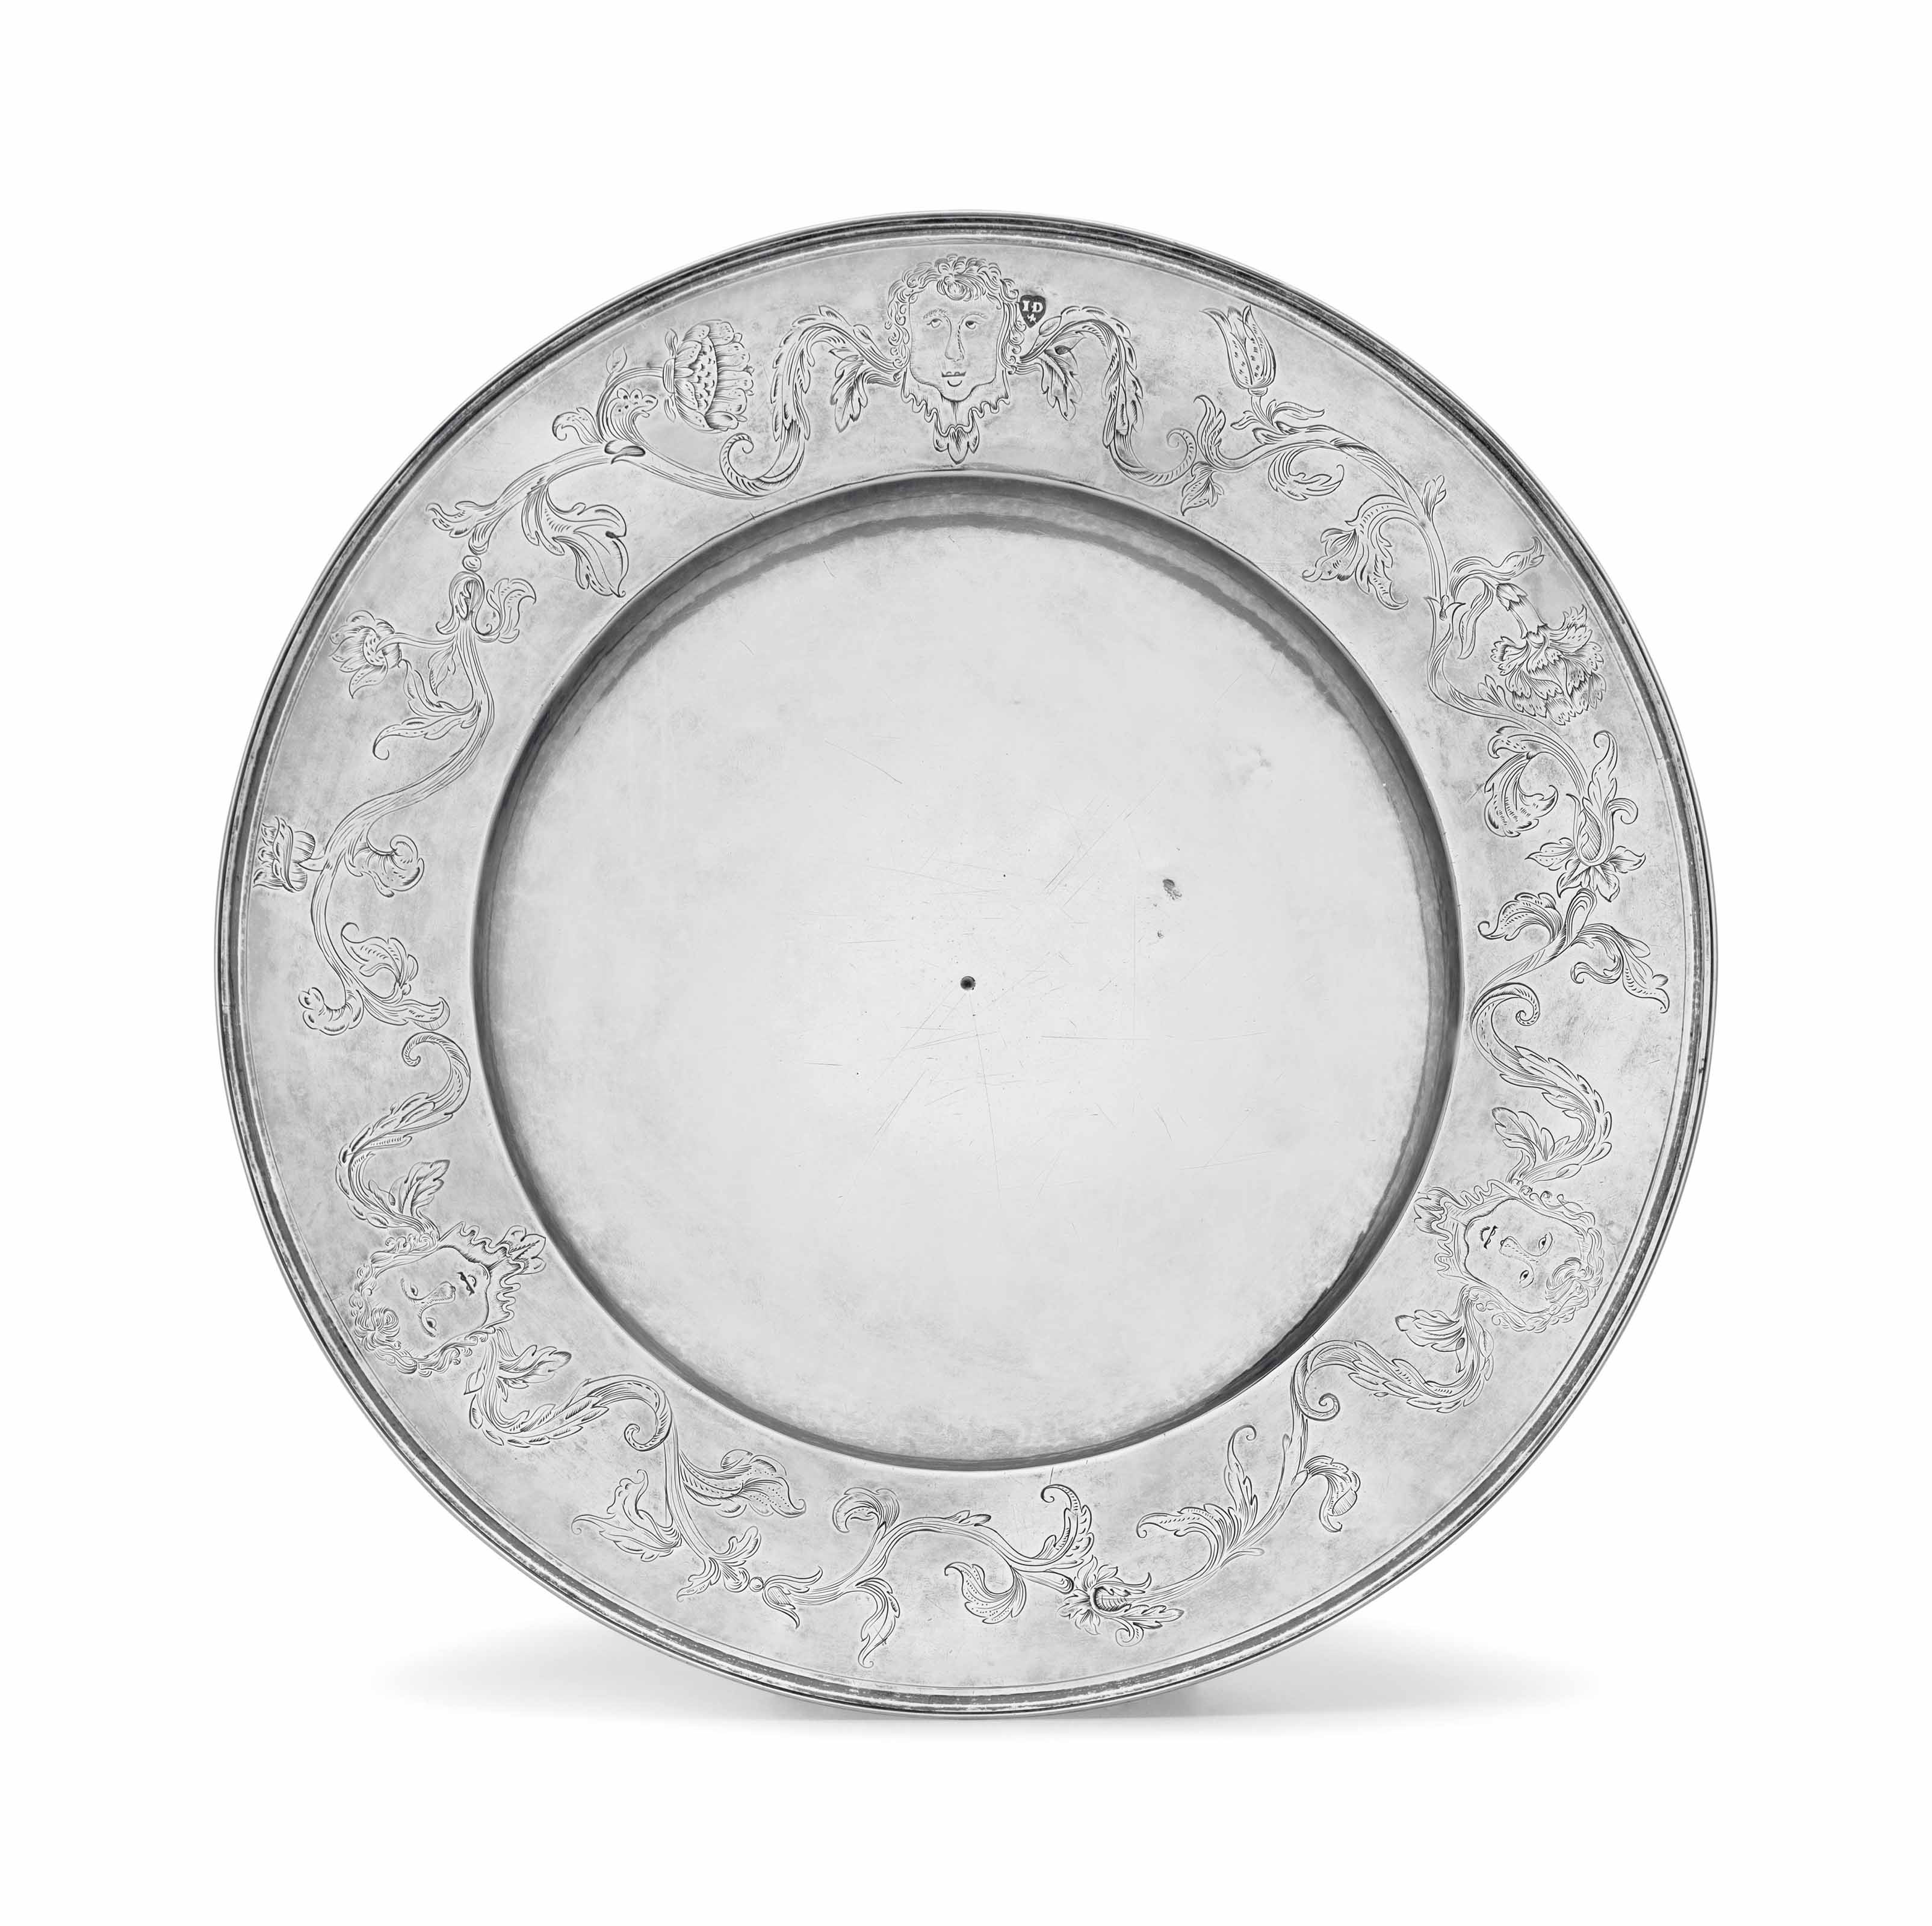 THE DIAMOND-NEWMARCH-MUGRIDGE PLATTER: A HIGHLY IMPORTANT ENGRAVED SILVER SERVING PLATE